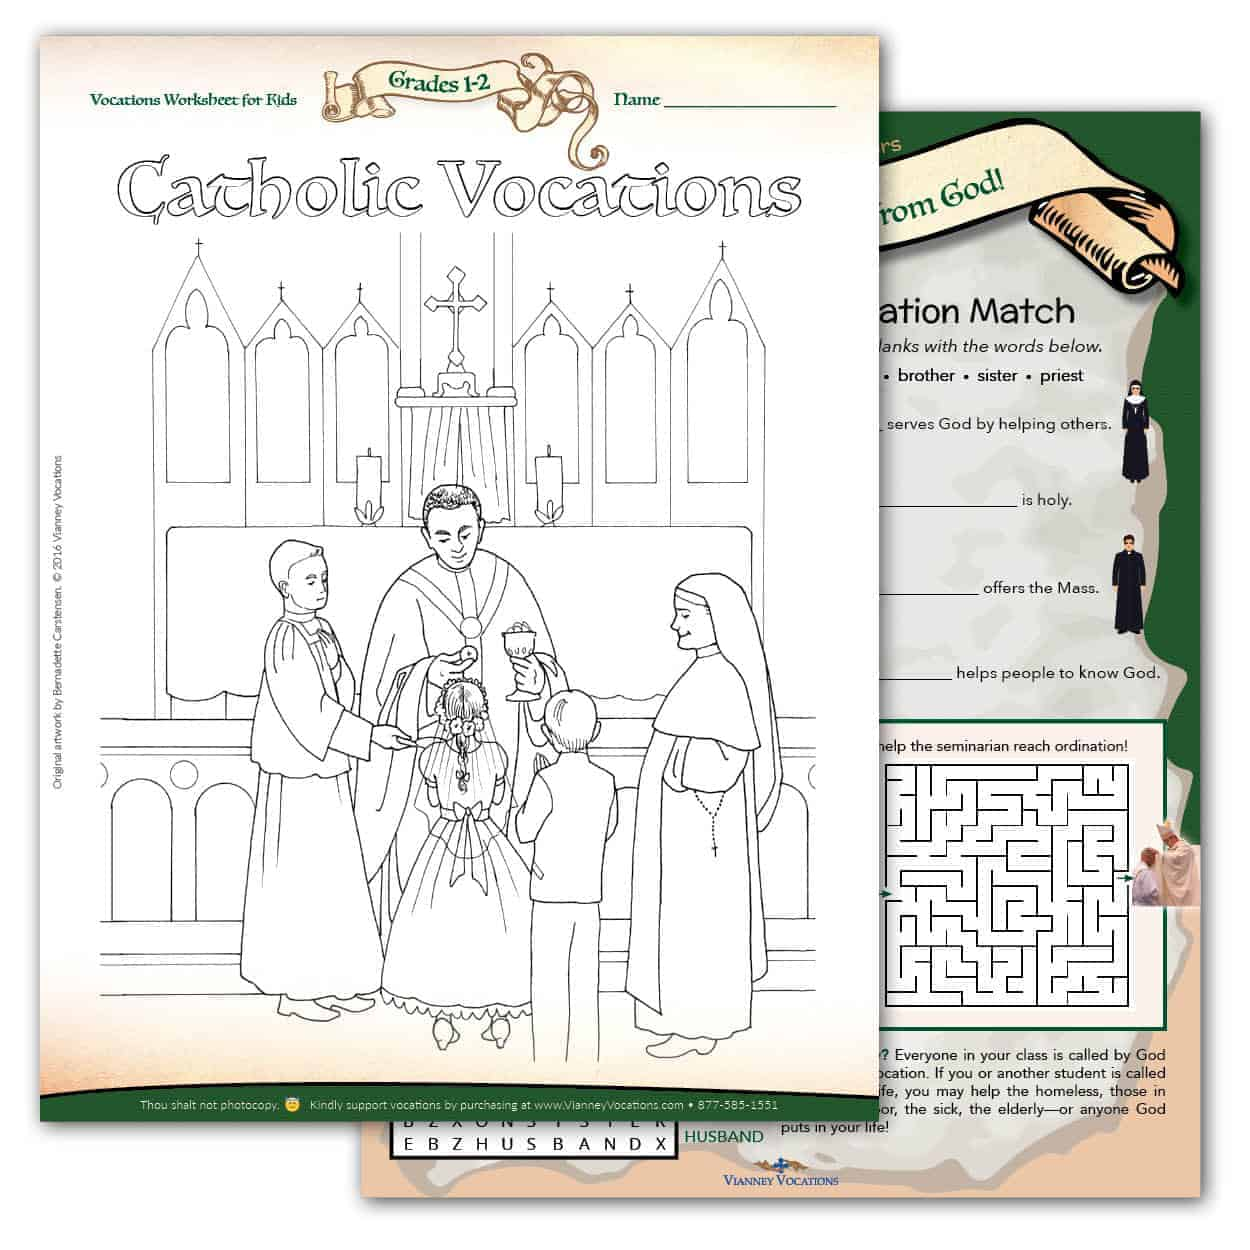 graphic about Catholic Printable Activities referred to as Vocations Worksheet for Little ones - Grades 1-2